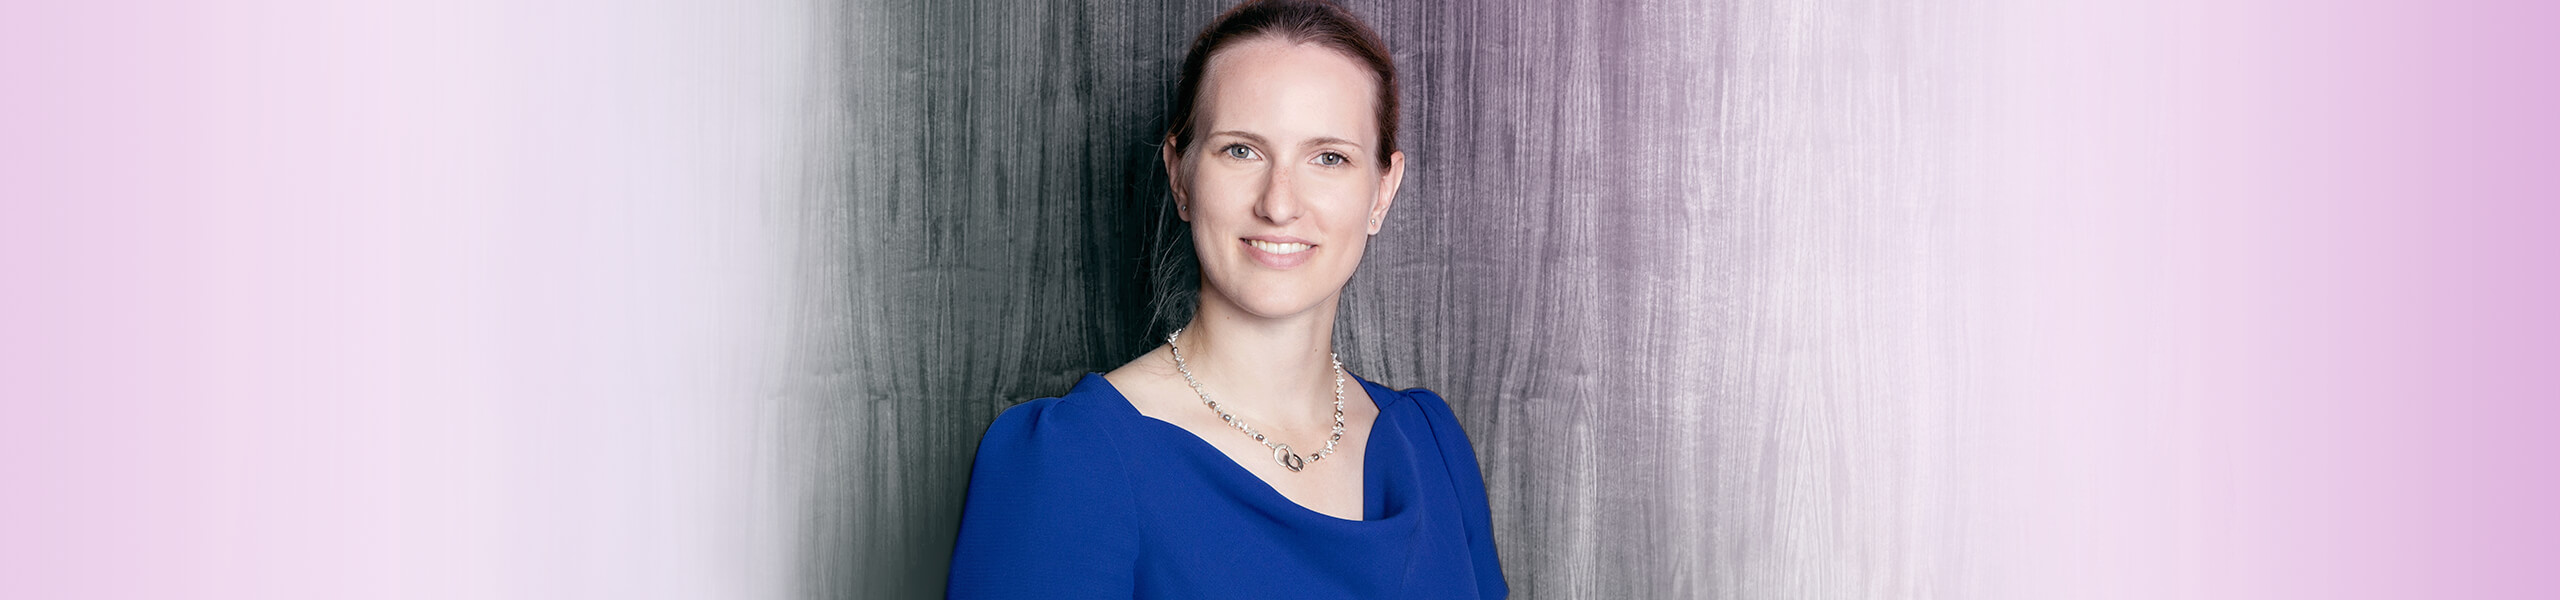 Anne Jekat Vice Presiden Deutsche Management Consulting